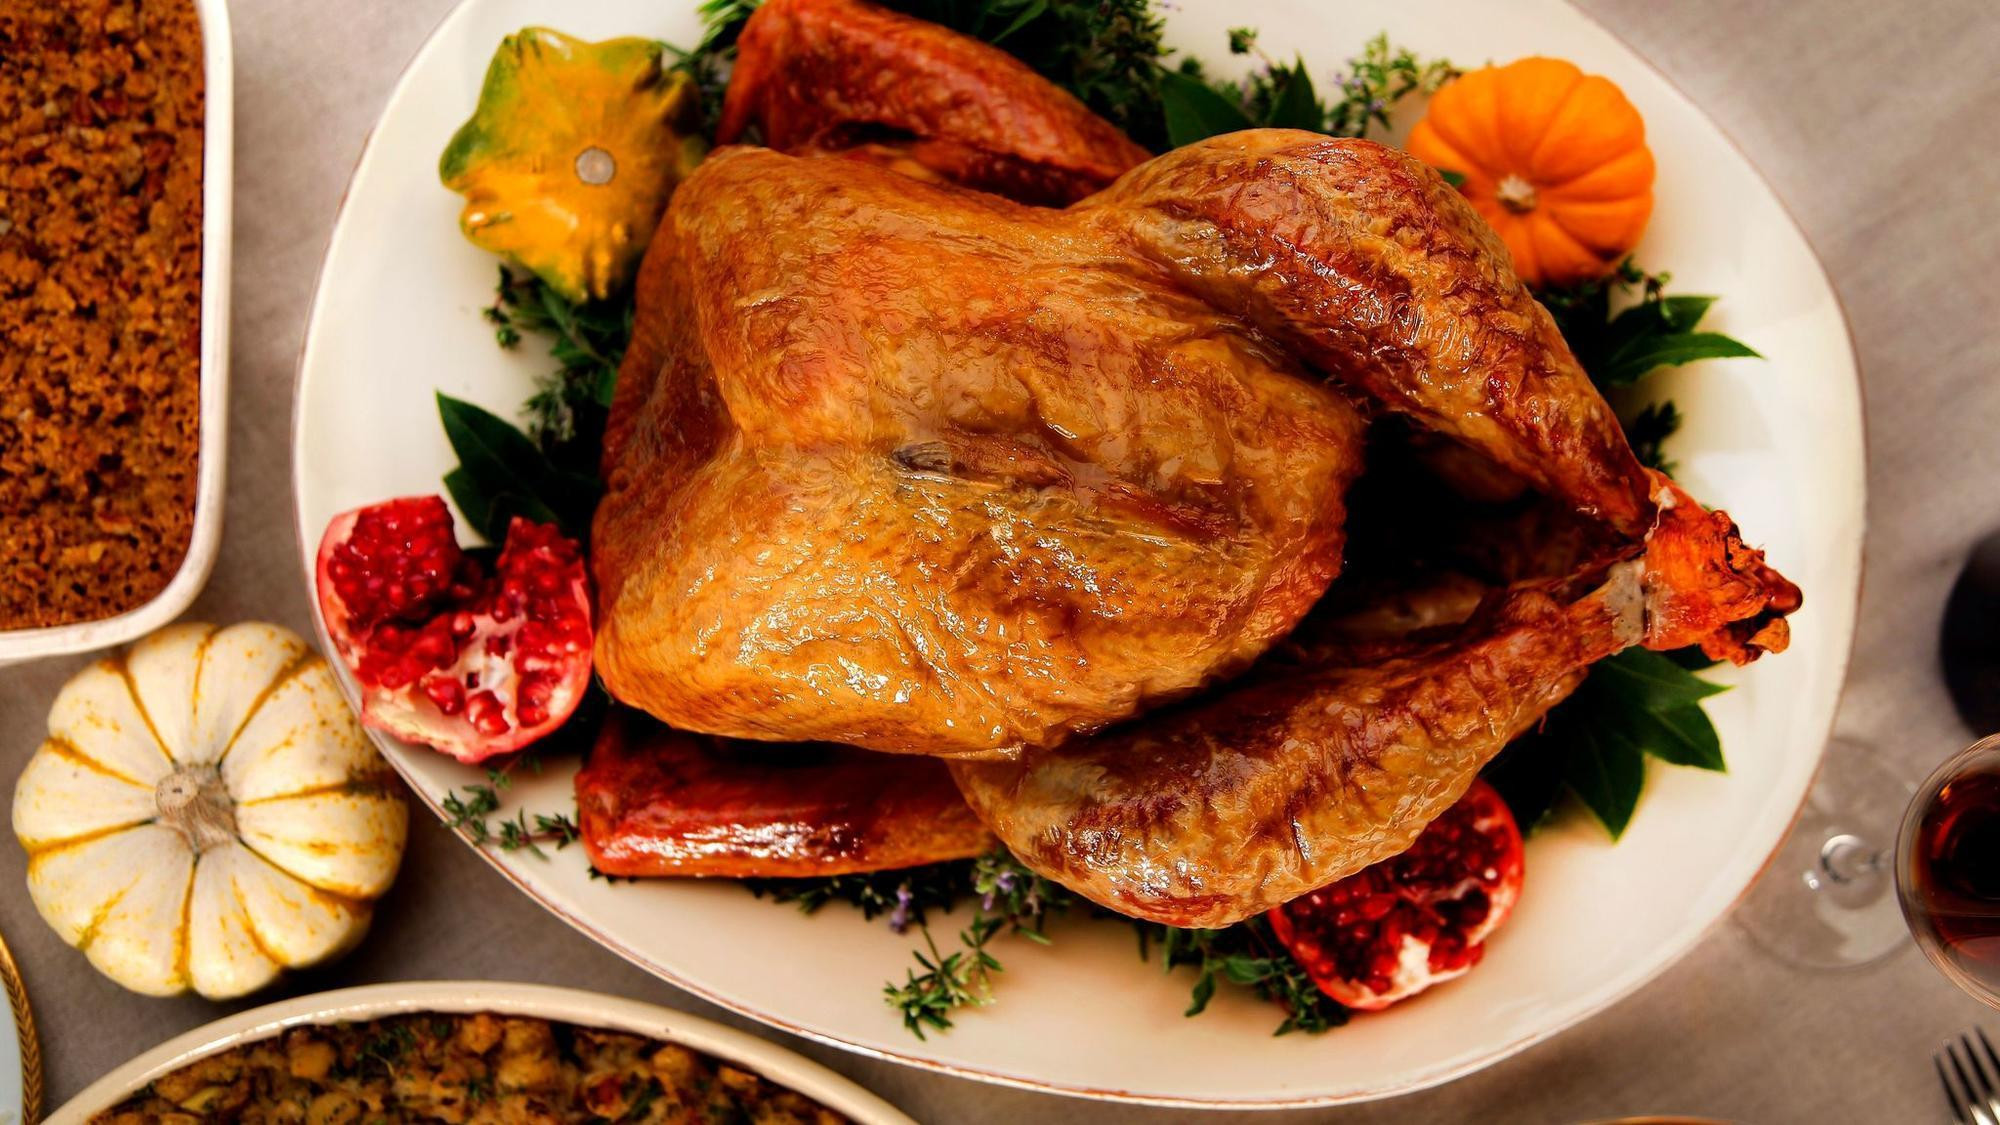 Cook Thanksgiving Turkey  Turkey 101 How to cook a Thanksgiving turkey LA Times